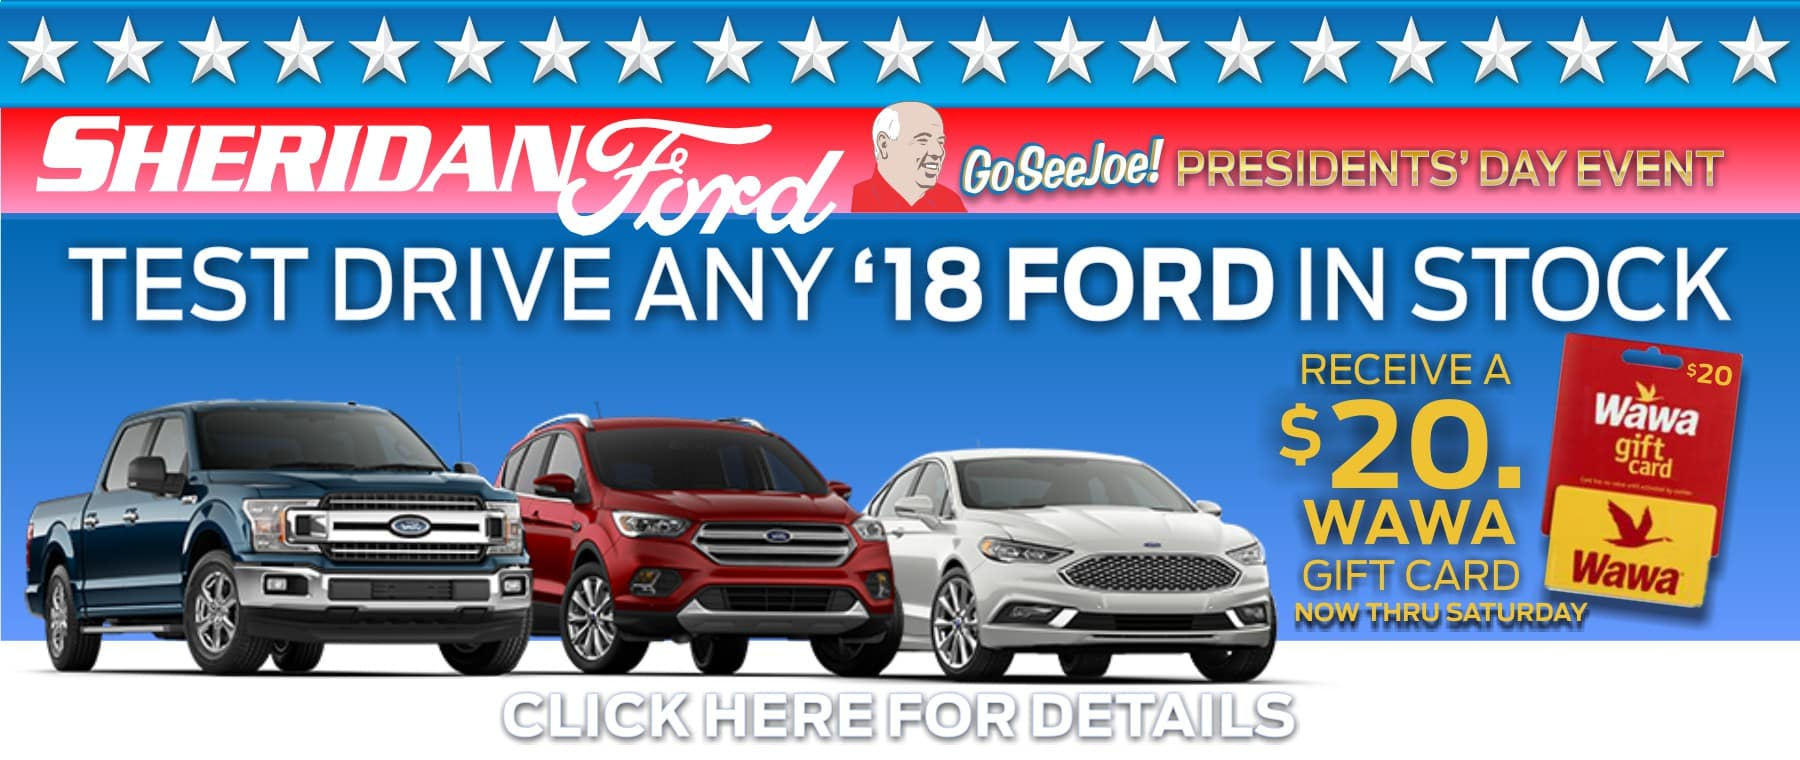 Earn a $25 gift card for test driving any 2018 Ford In-Stock!